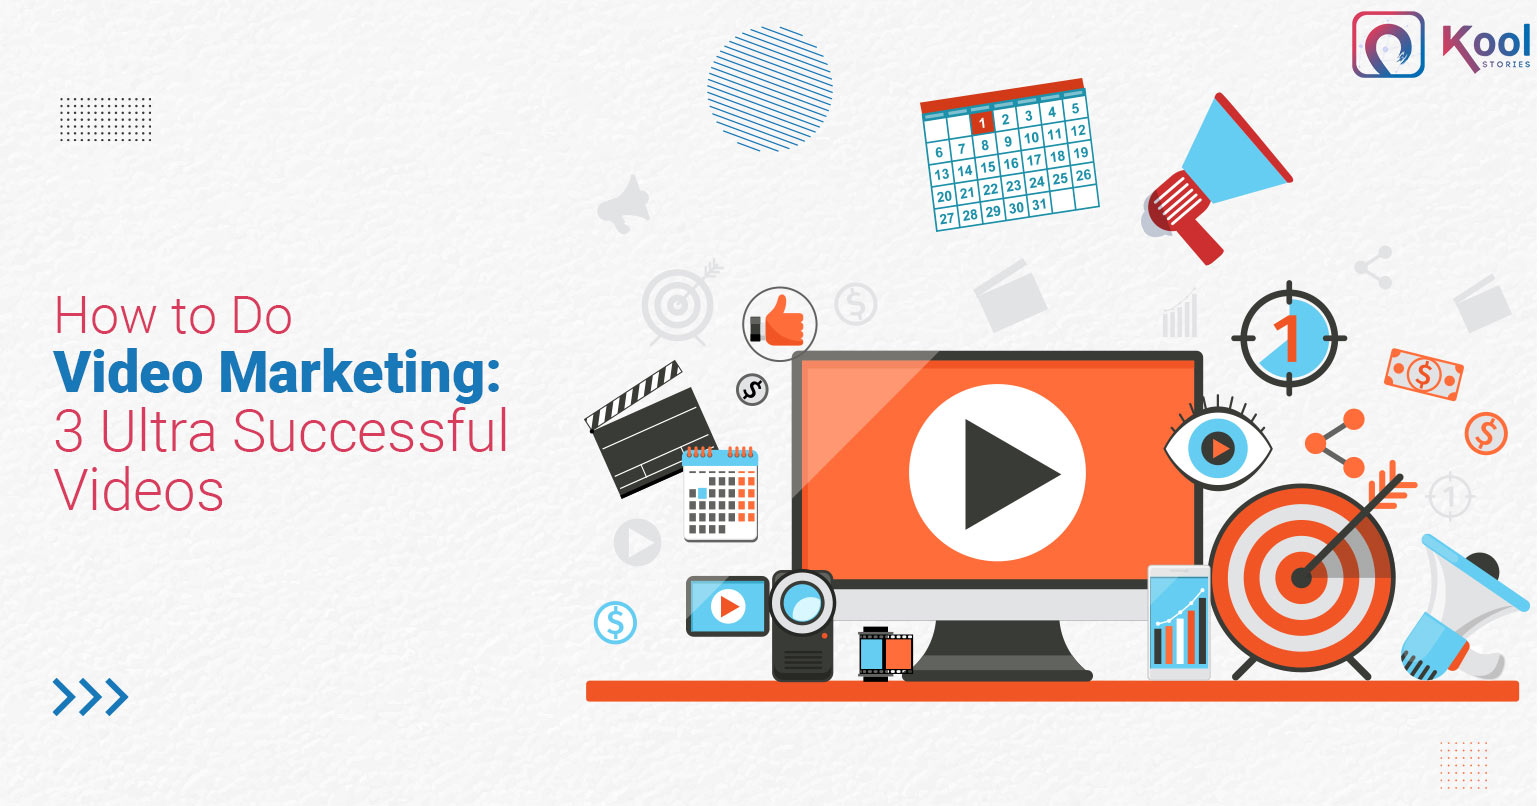 How to Do Video Marketing: Learn from 3 Ultra-Successful Video Campaigns